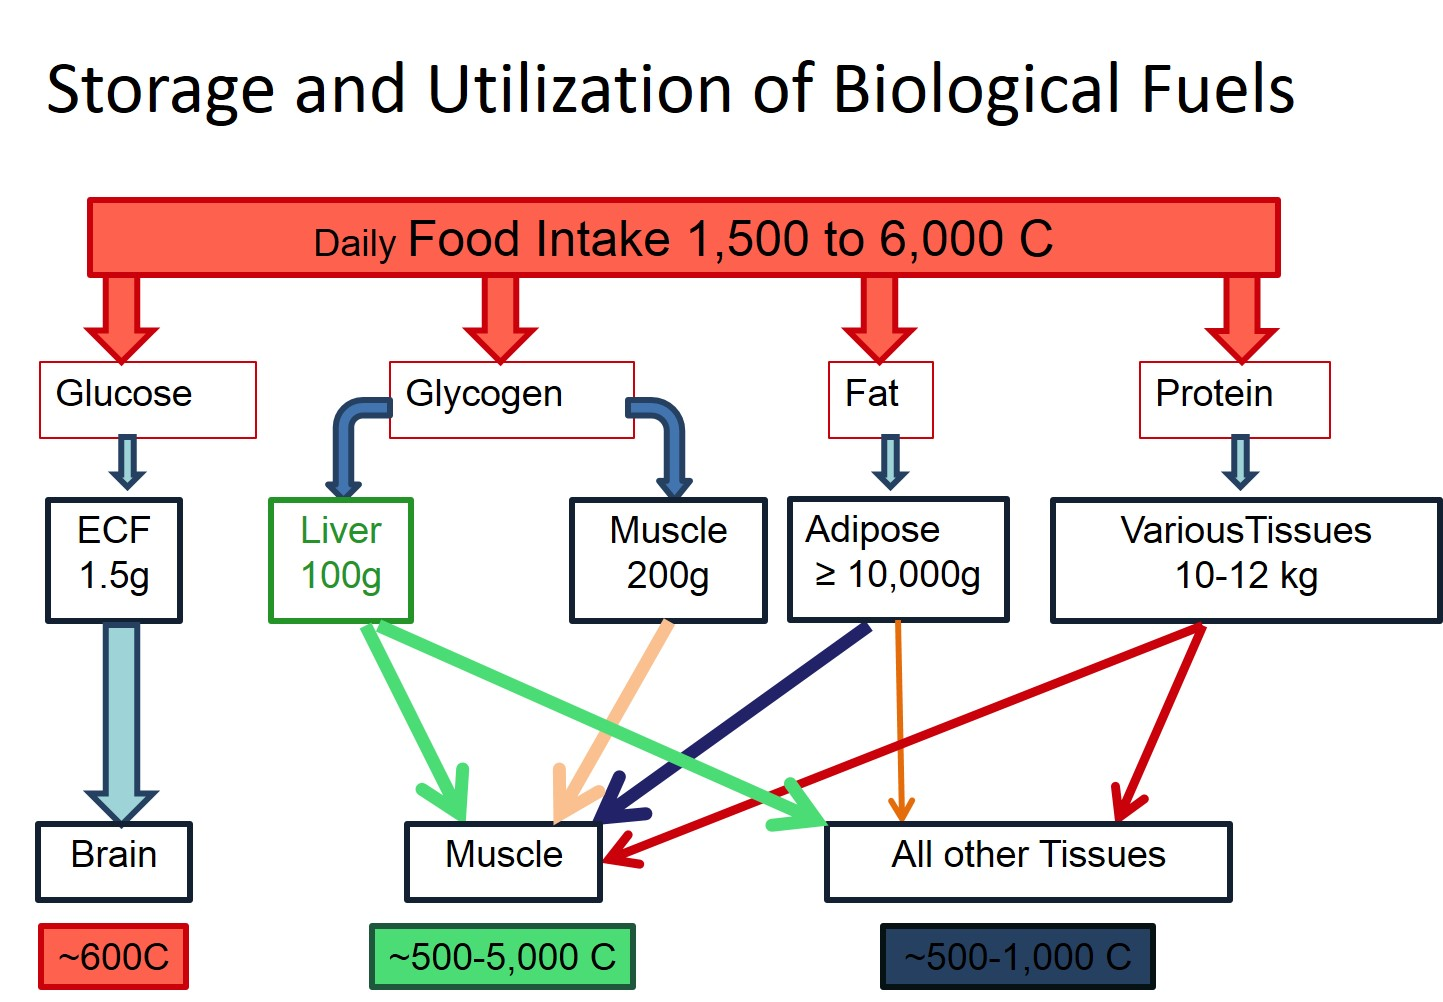 Storage and Utilization of Biological Fuels